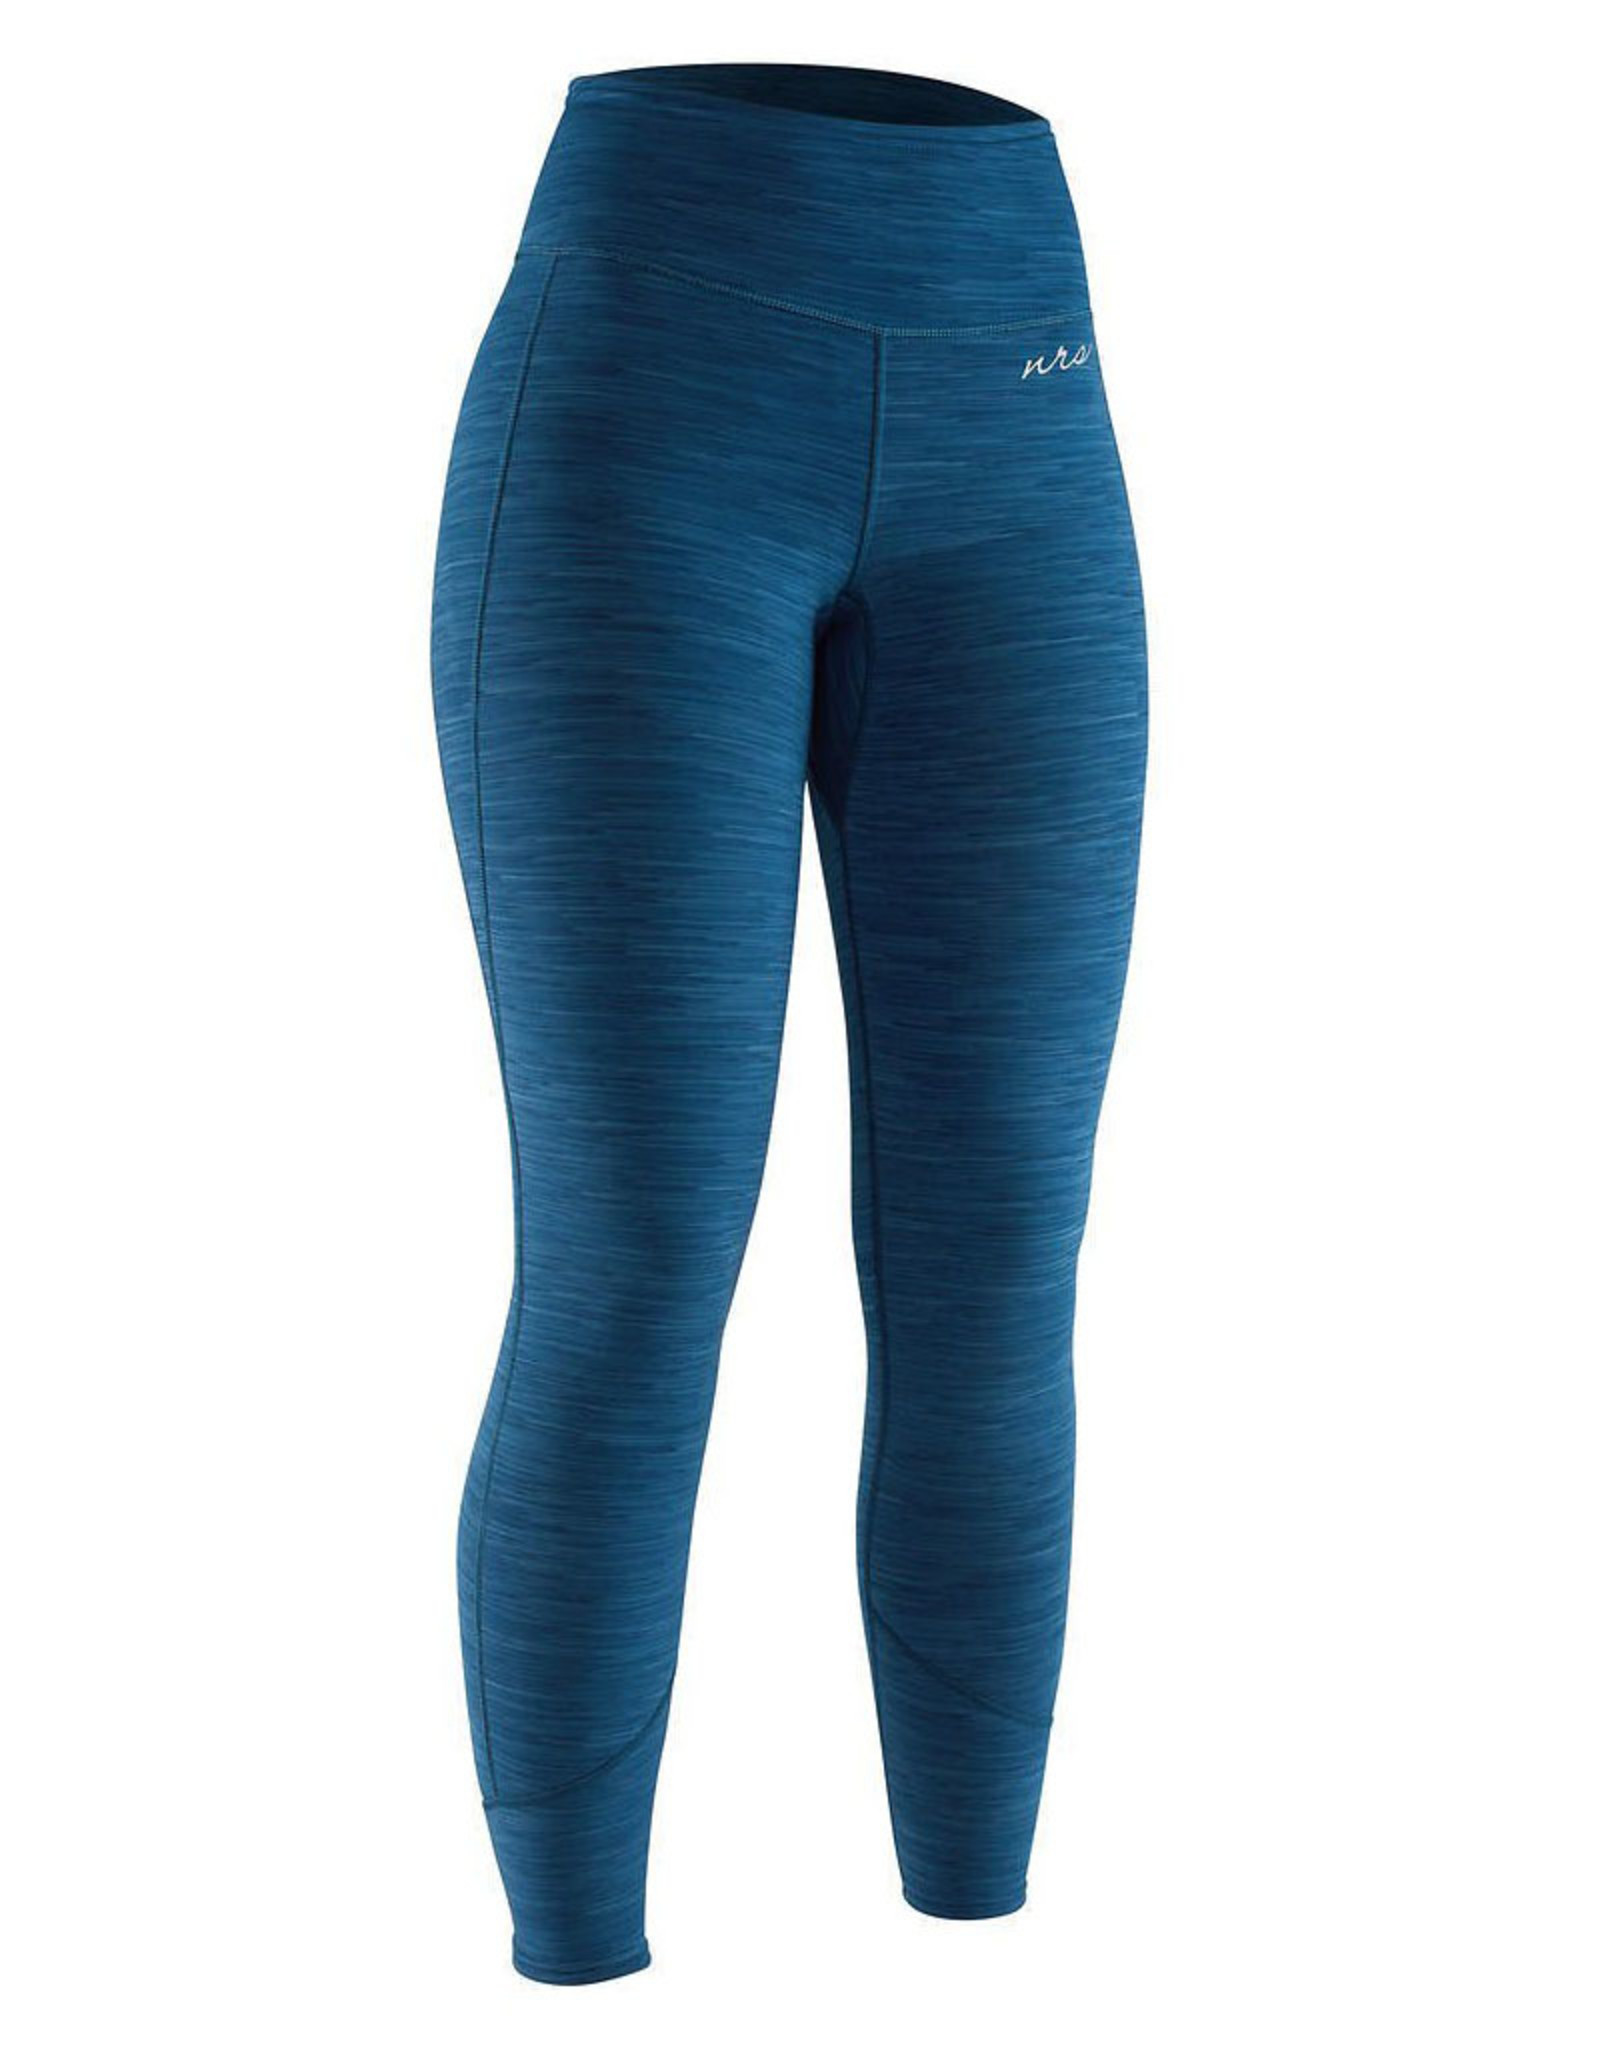 NRS NRS Hydroskin .5 Pants - Women's